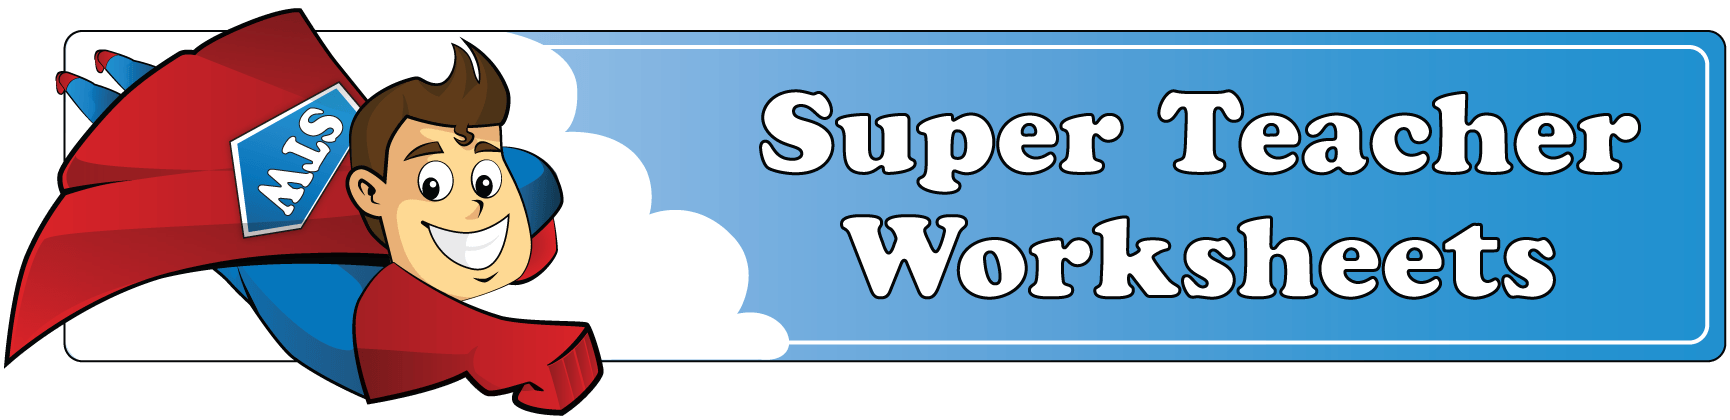 Log In to Super Teacher Worksheets – Super Teachers Worksheet